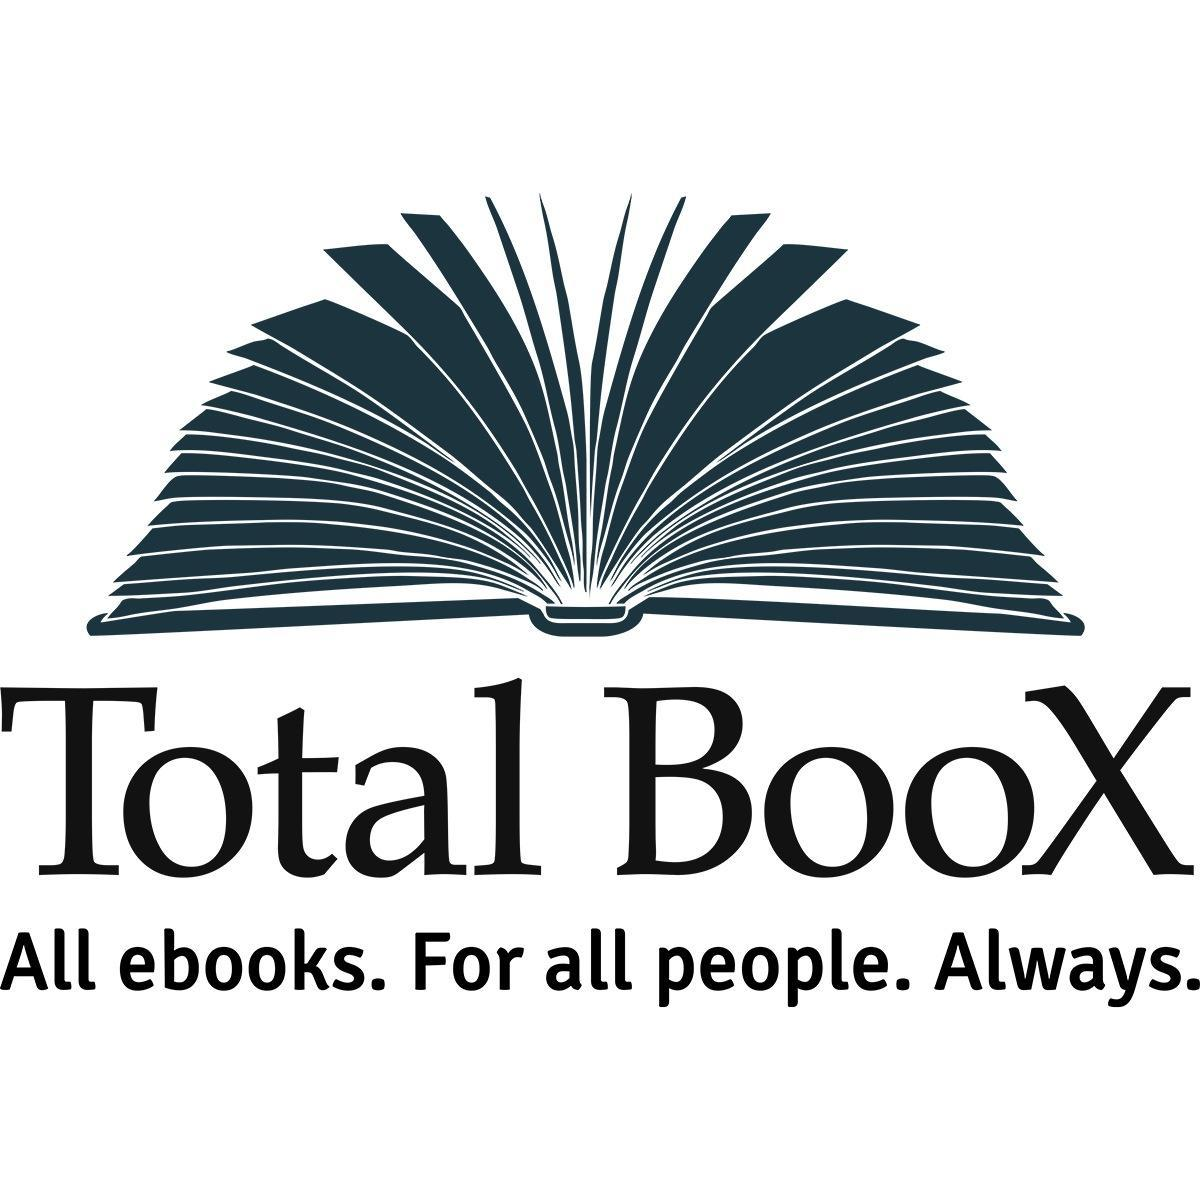 Total Boox